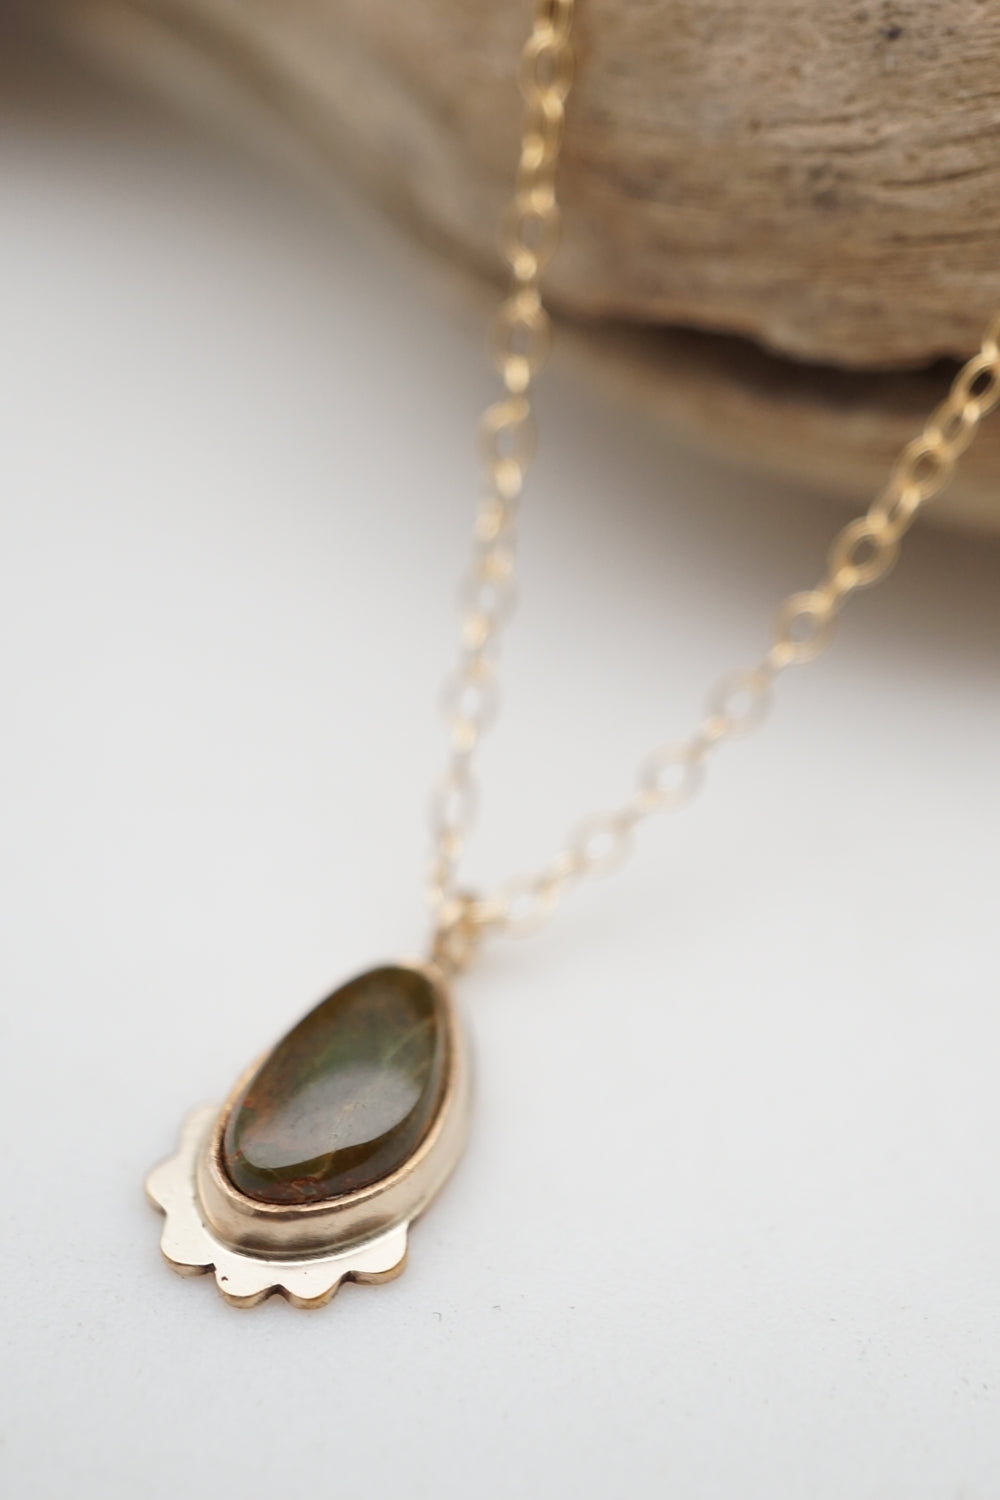 teeny tiny olive royston turquoise + 14k goldfill necklace